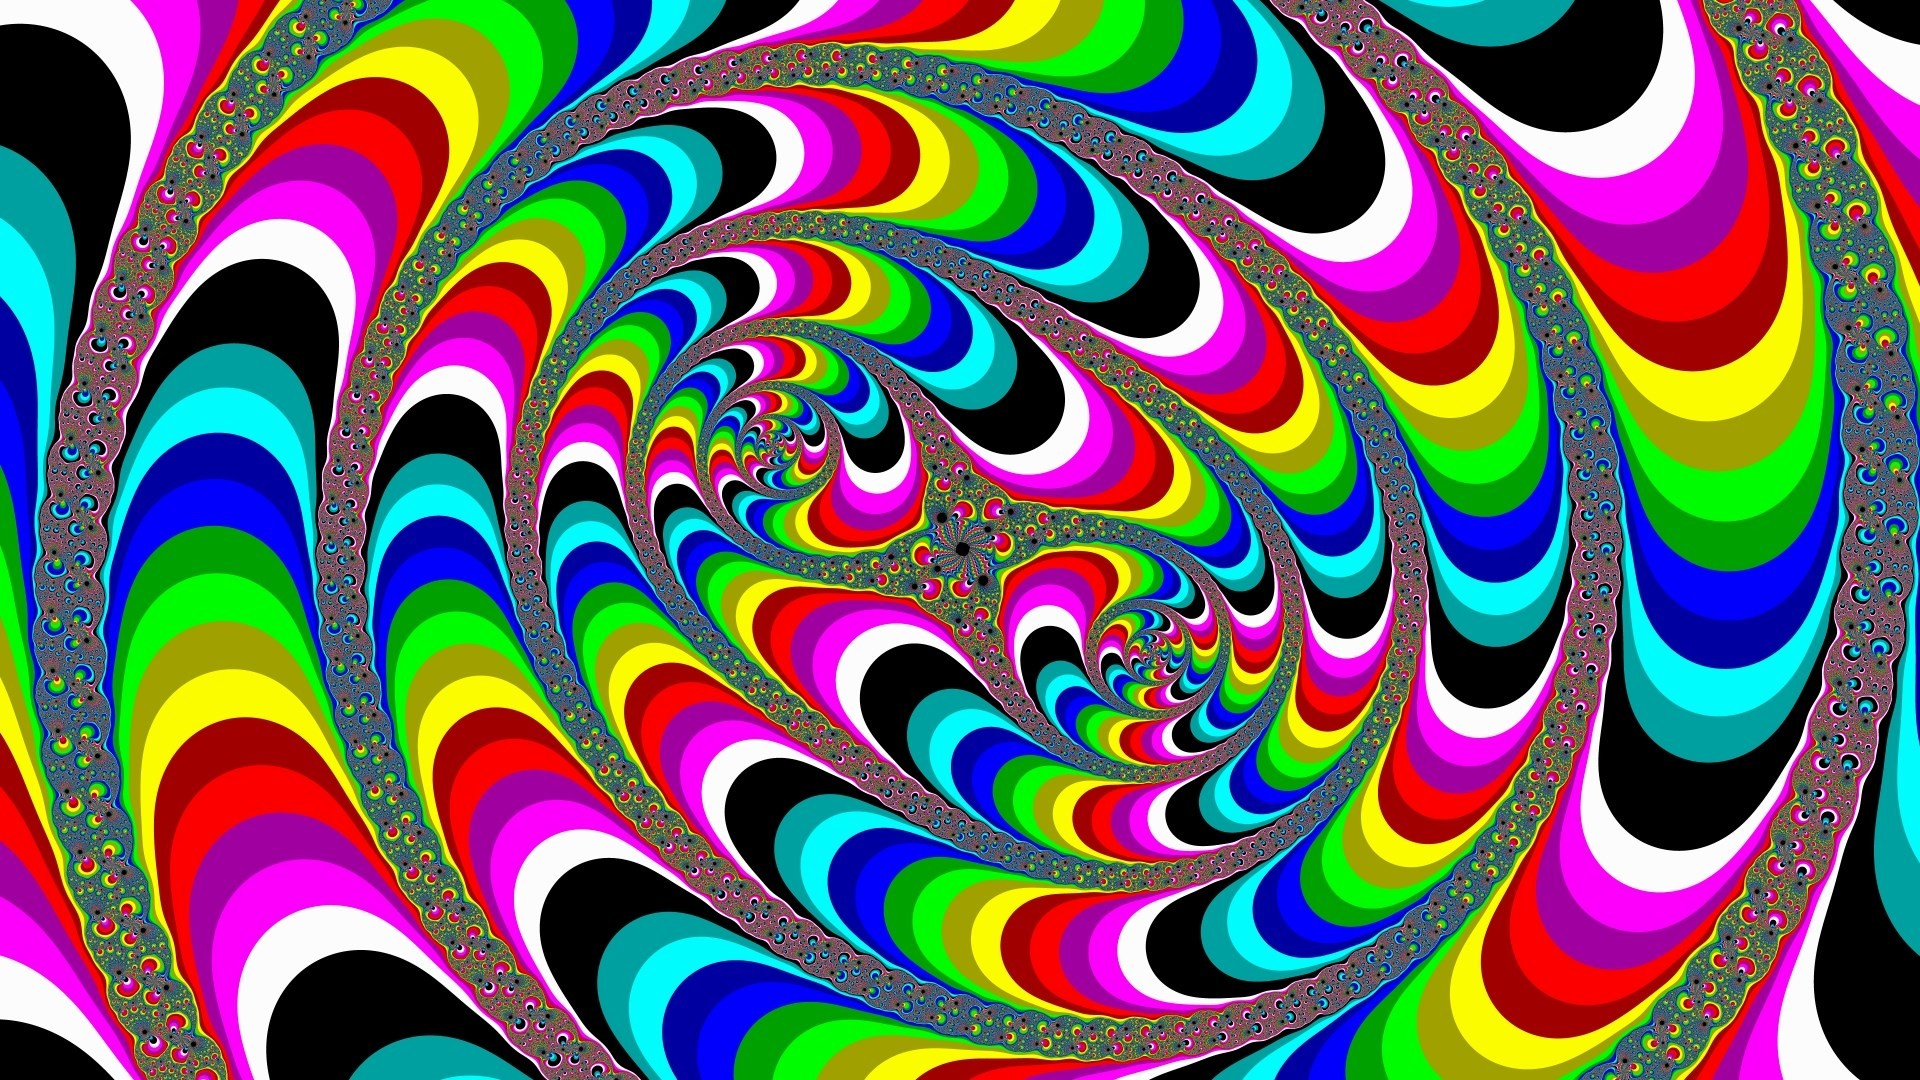 Trippy Wallpaper Backgrounds 1